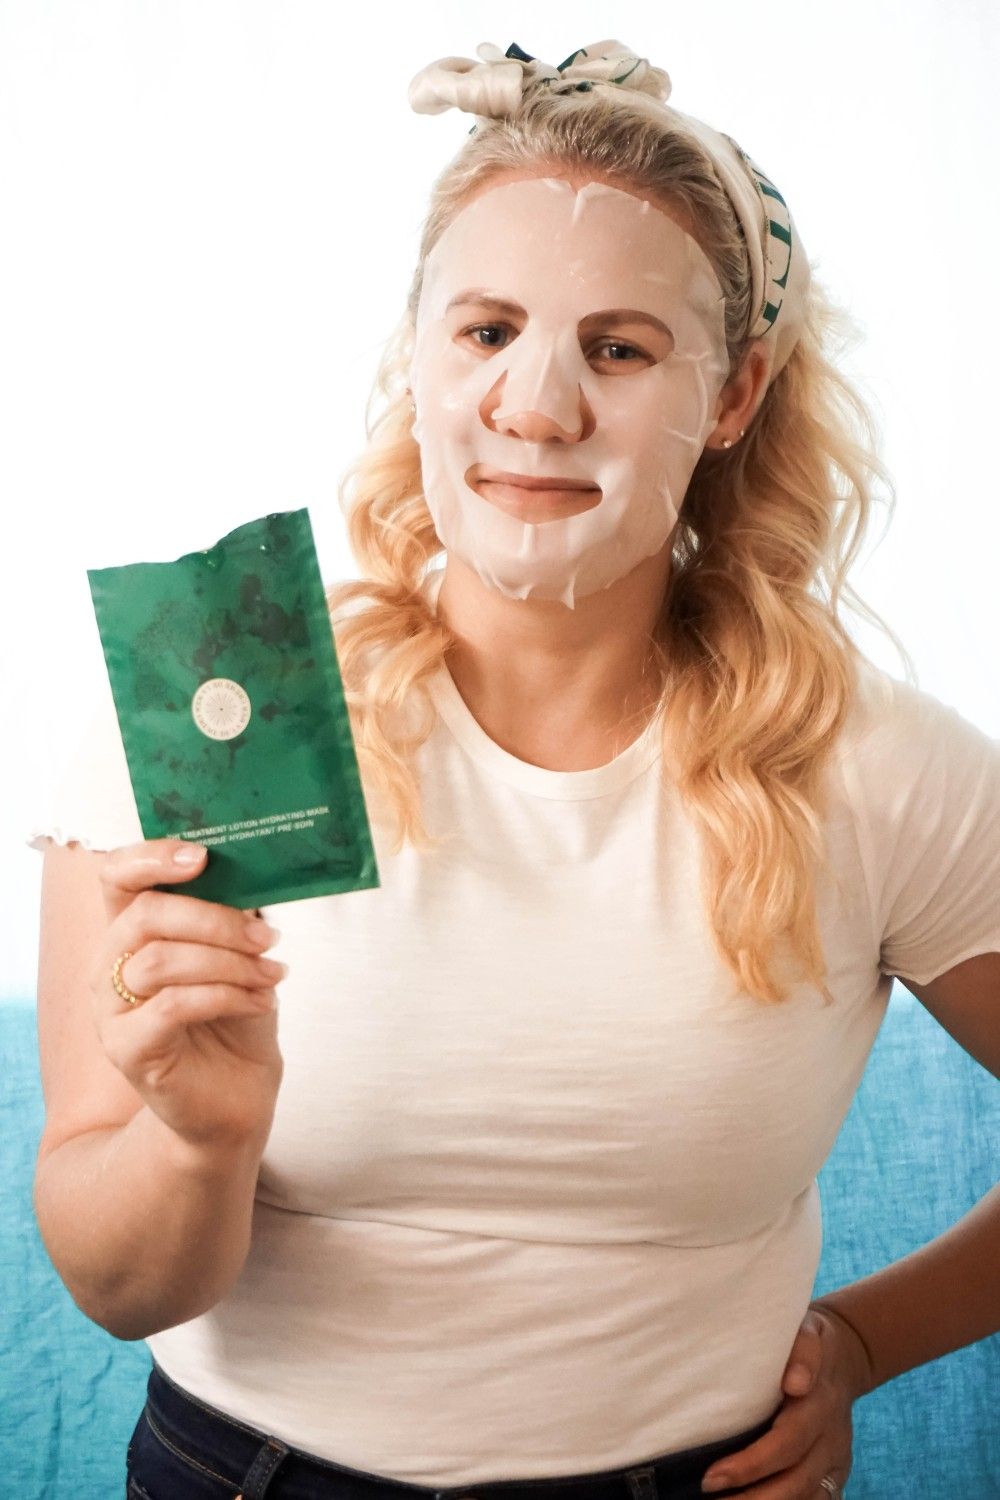 La Mer Hydrating Facial Sheet Mask Review, Skincare Treatment, Sheet Mask Review, La Mer Skincare, Skincare Routine, Over 30 Skincare Regime